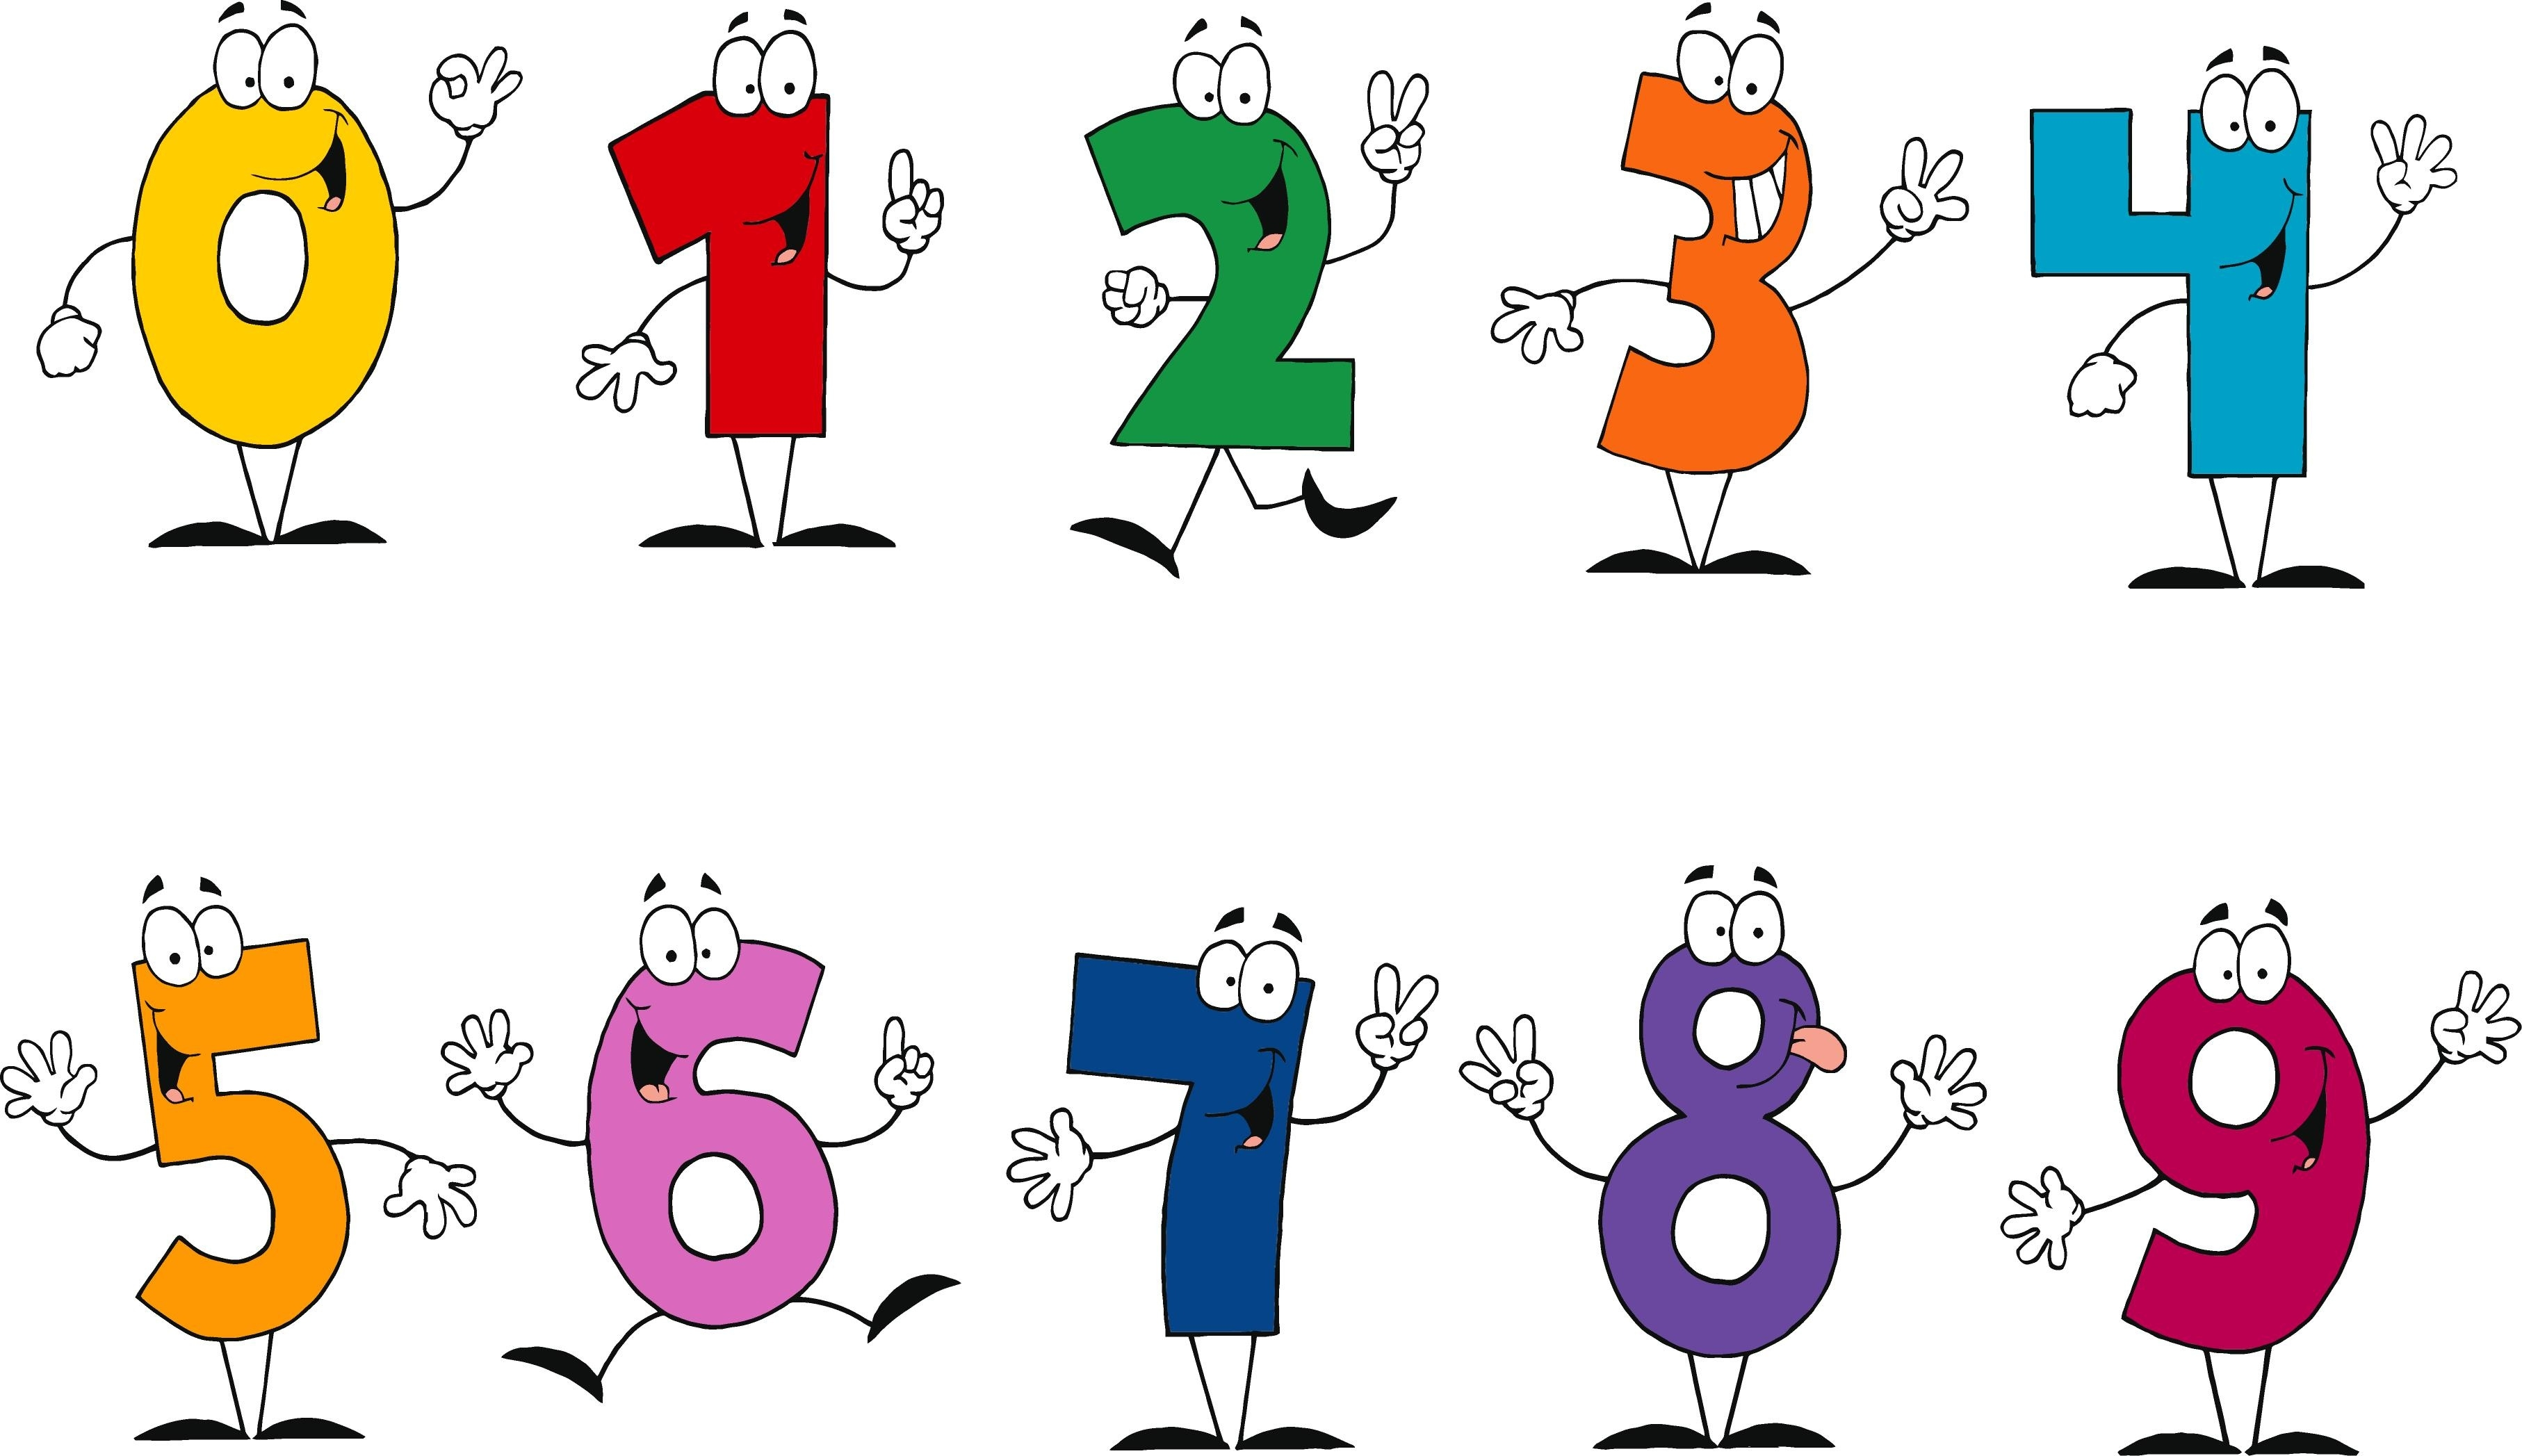 free clipart numbers at getdrawings com free for personal use free rh getdrawings com clip art numbers 1-10 clipart numbers black and white